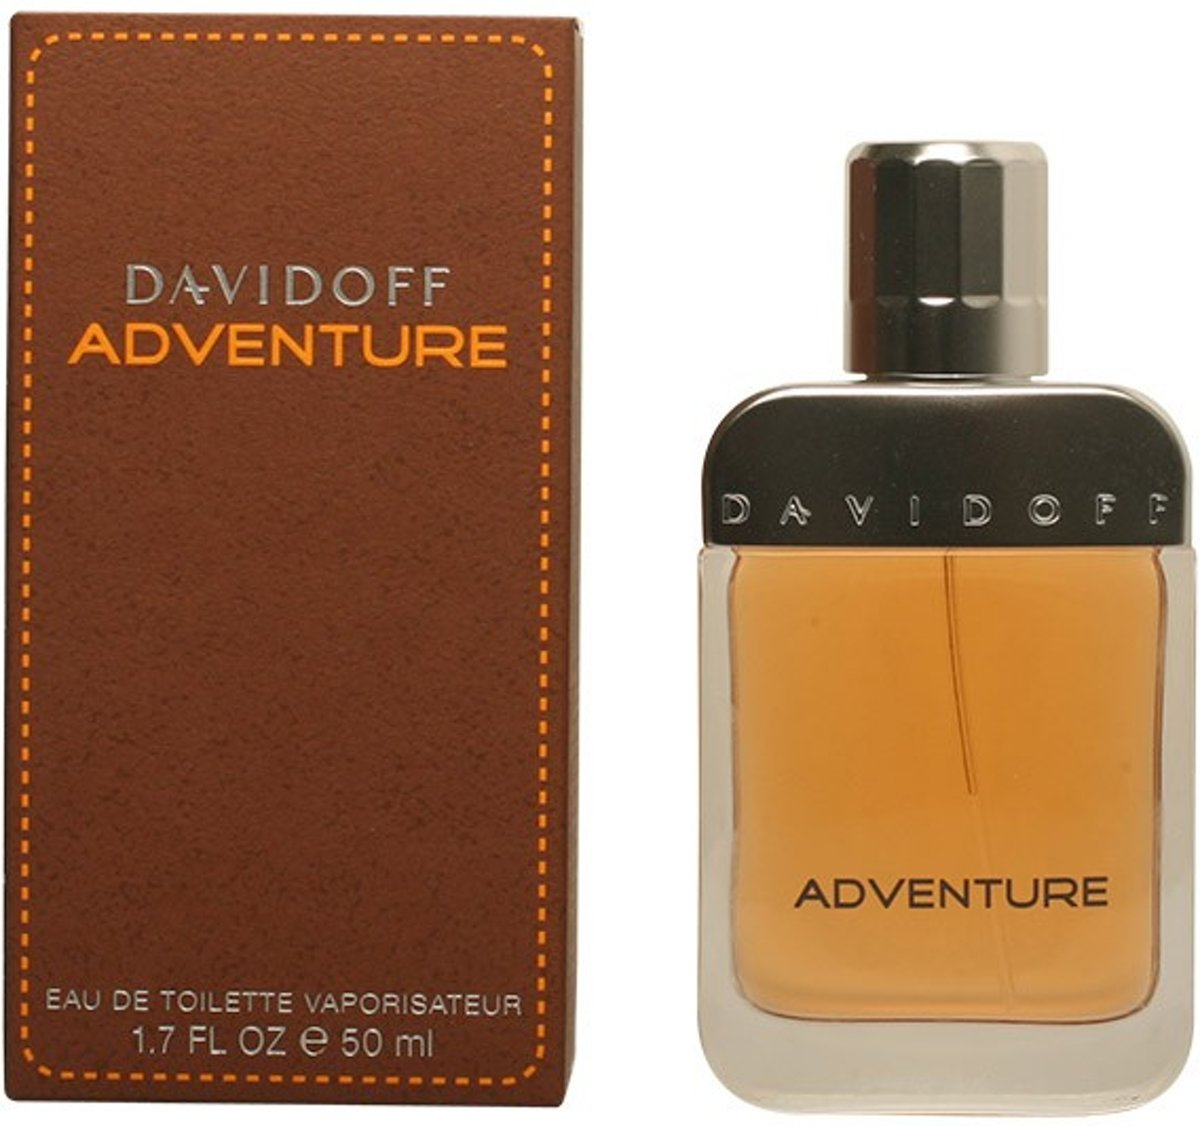 MULTI BUNDEL 2 stuks ADVENTURE Eau de Toilette Spray 50 ml